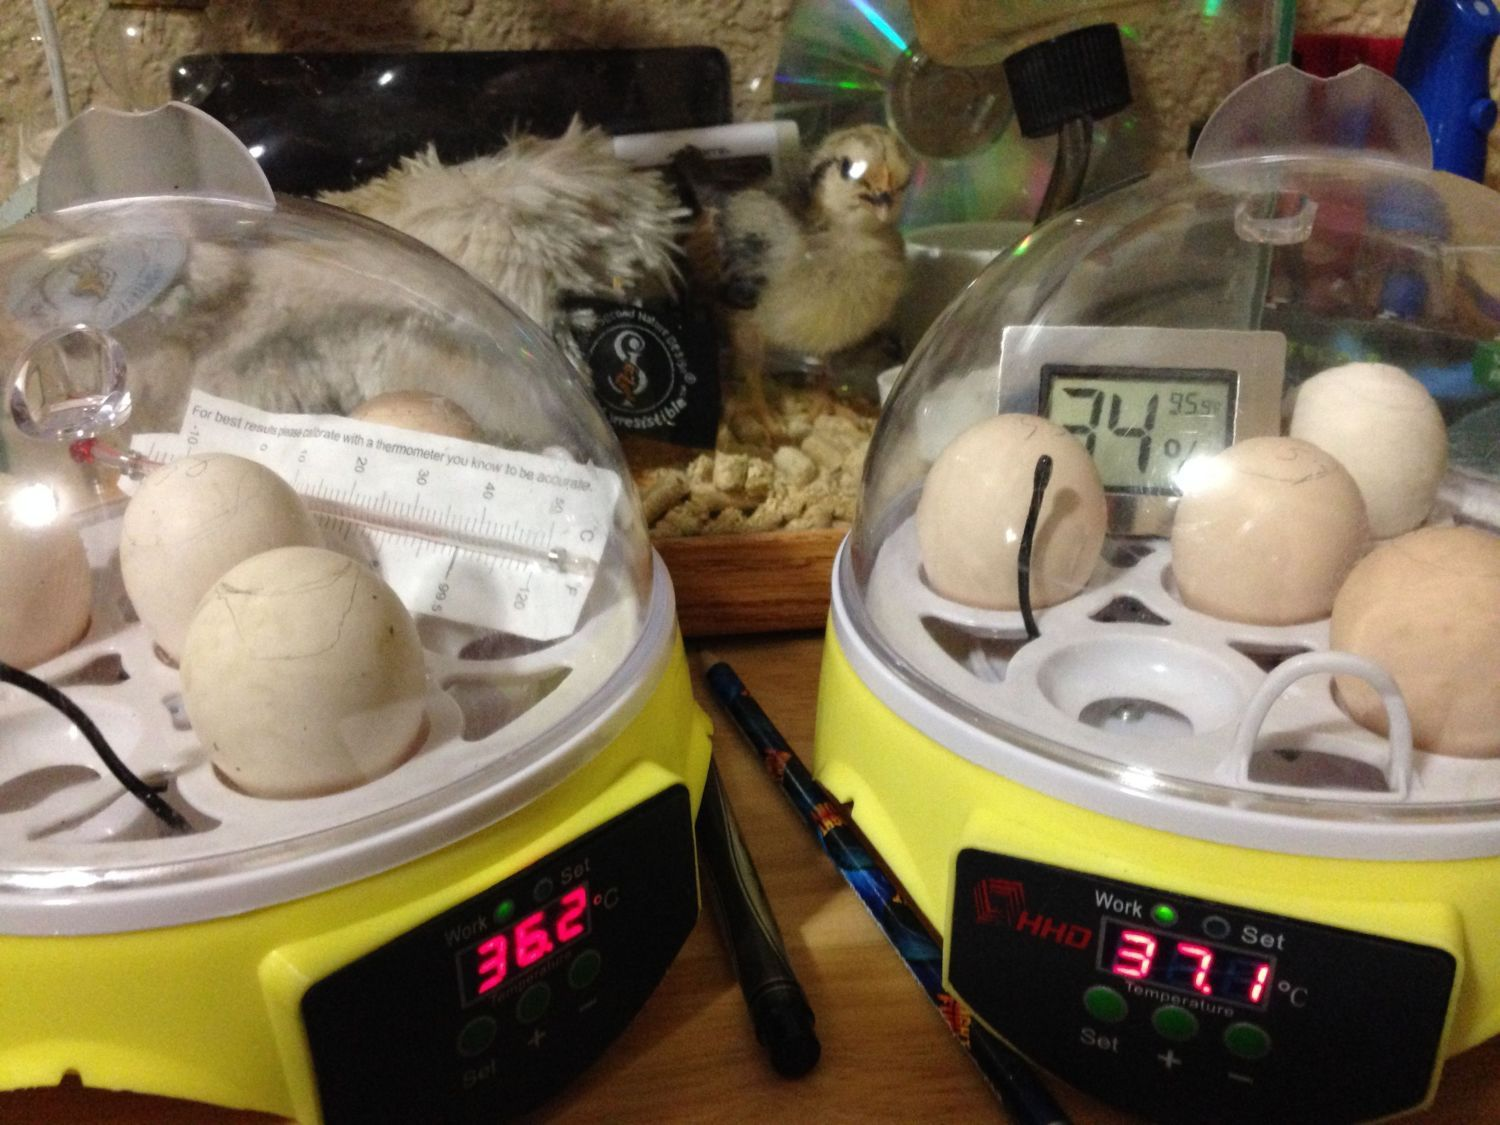 Third attempt with a new incubator.